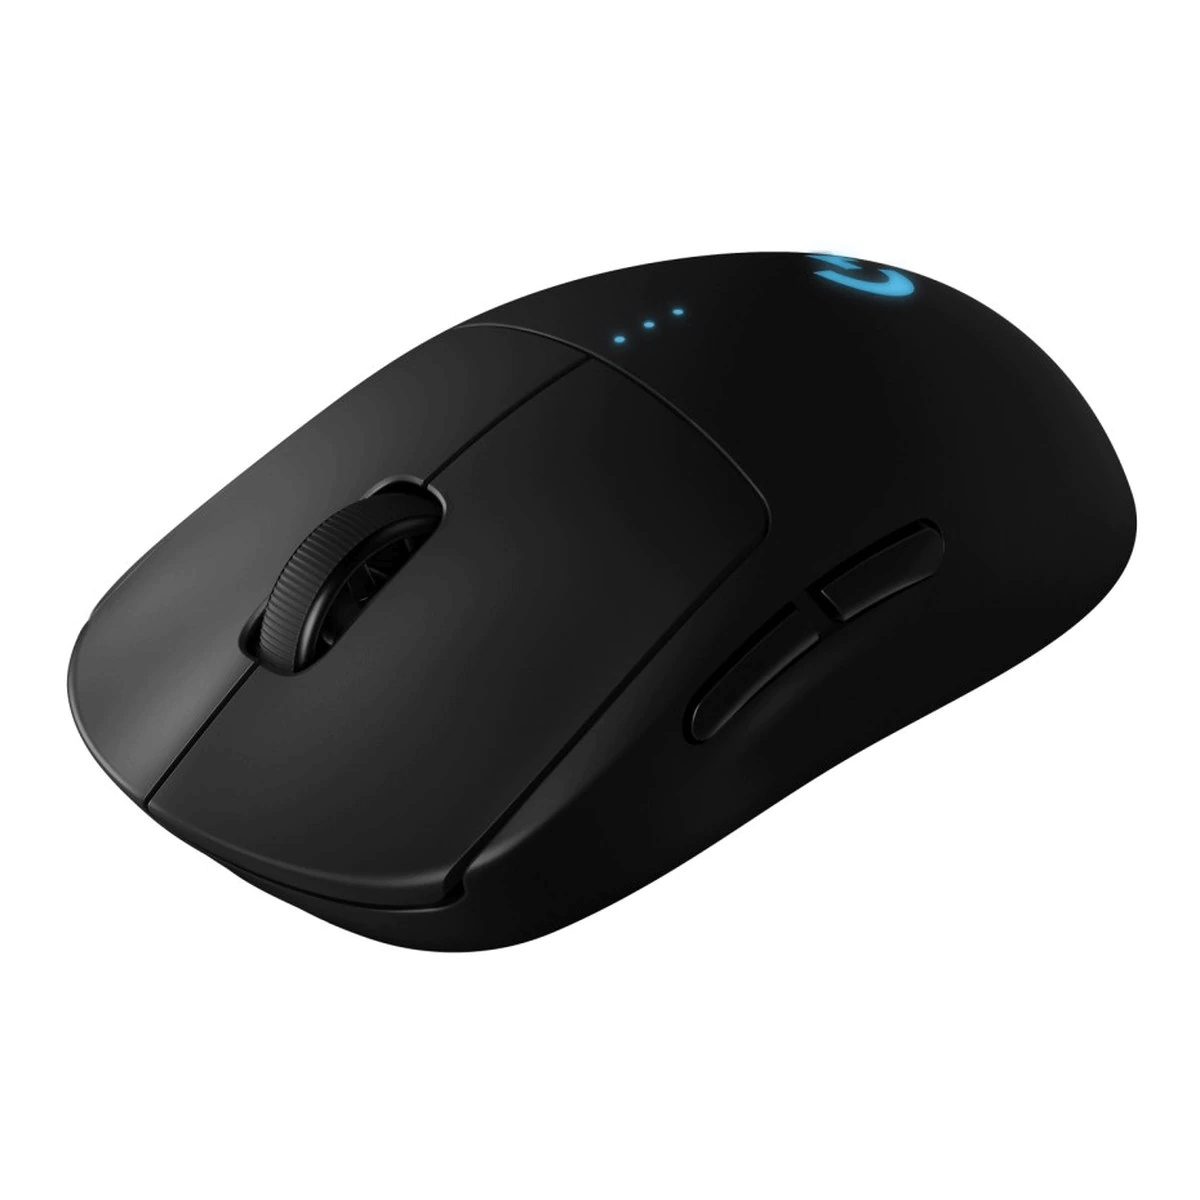 Logitech GPro Wireless Gaming Mouse